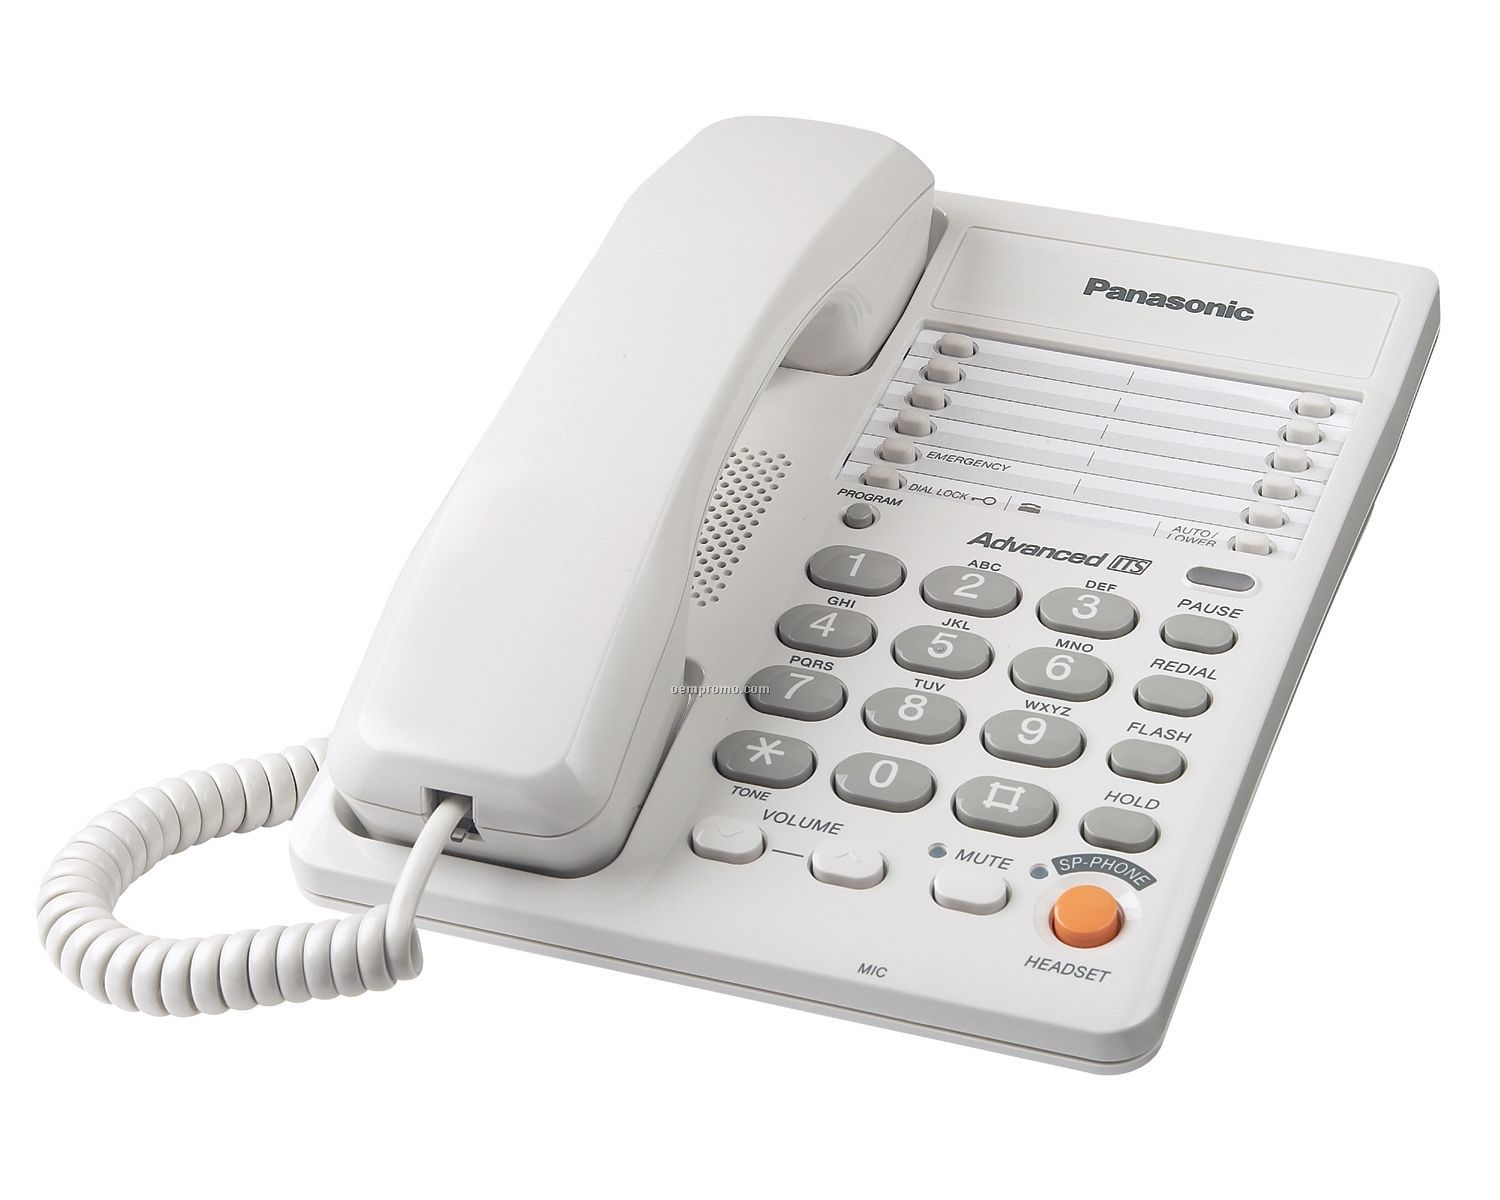 panasonic integrated corded telephone white china wholesale panasonic integrated corded. Black Bedroom Furniture Sets. Home Design Ideas